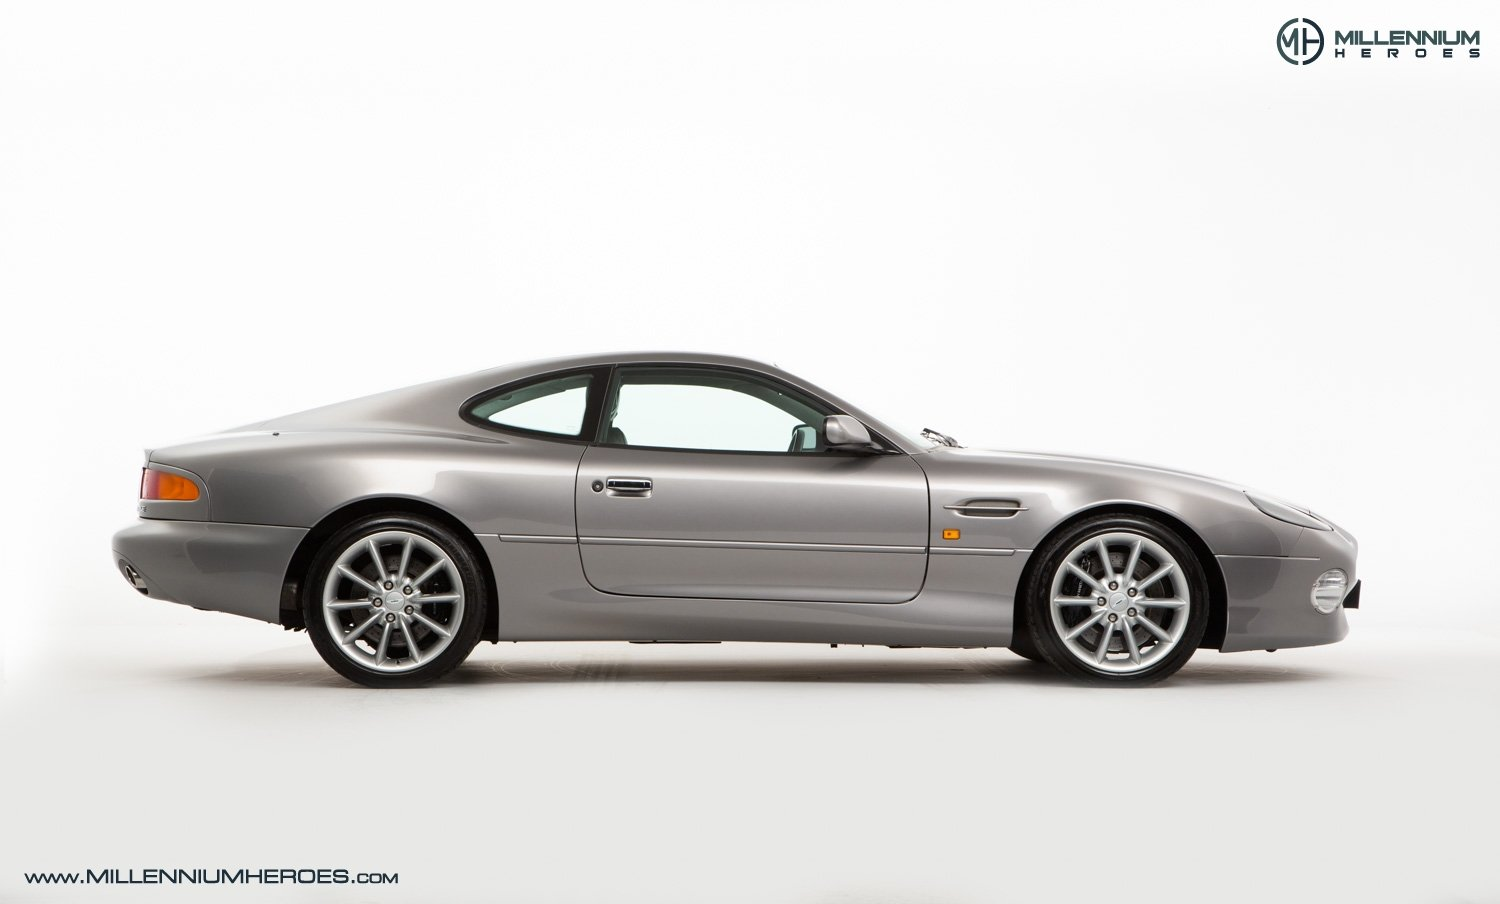 2000 ASTON MARTIN DB7 5.9 VANTAGE  For Sale (picture 9 of 24)